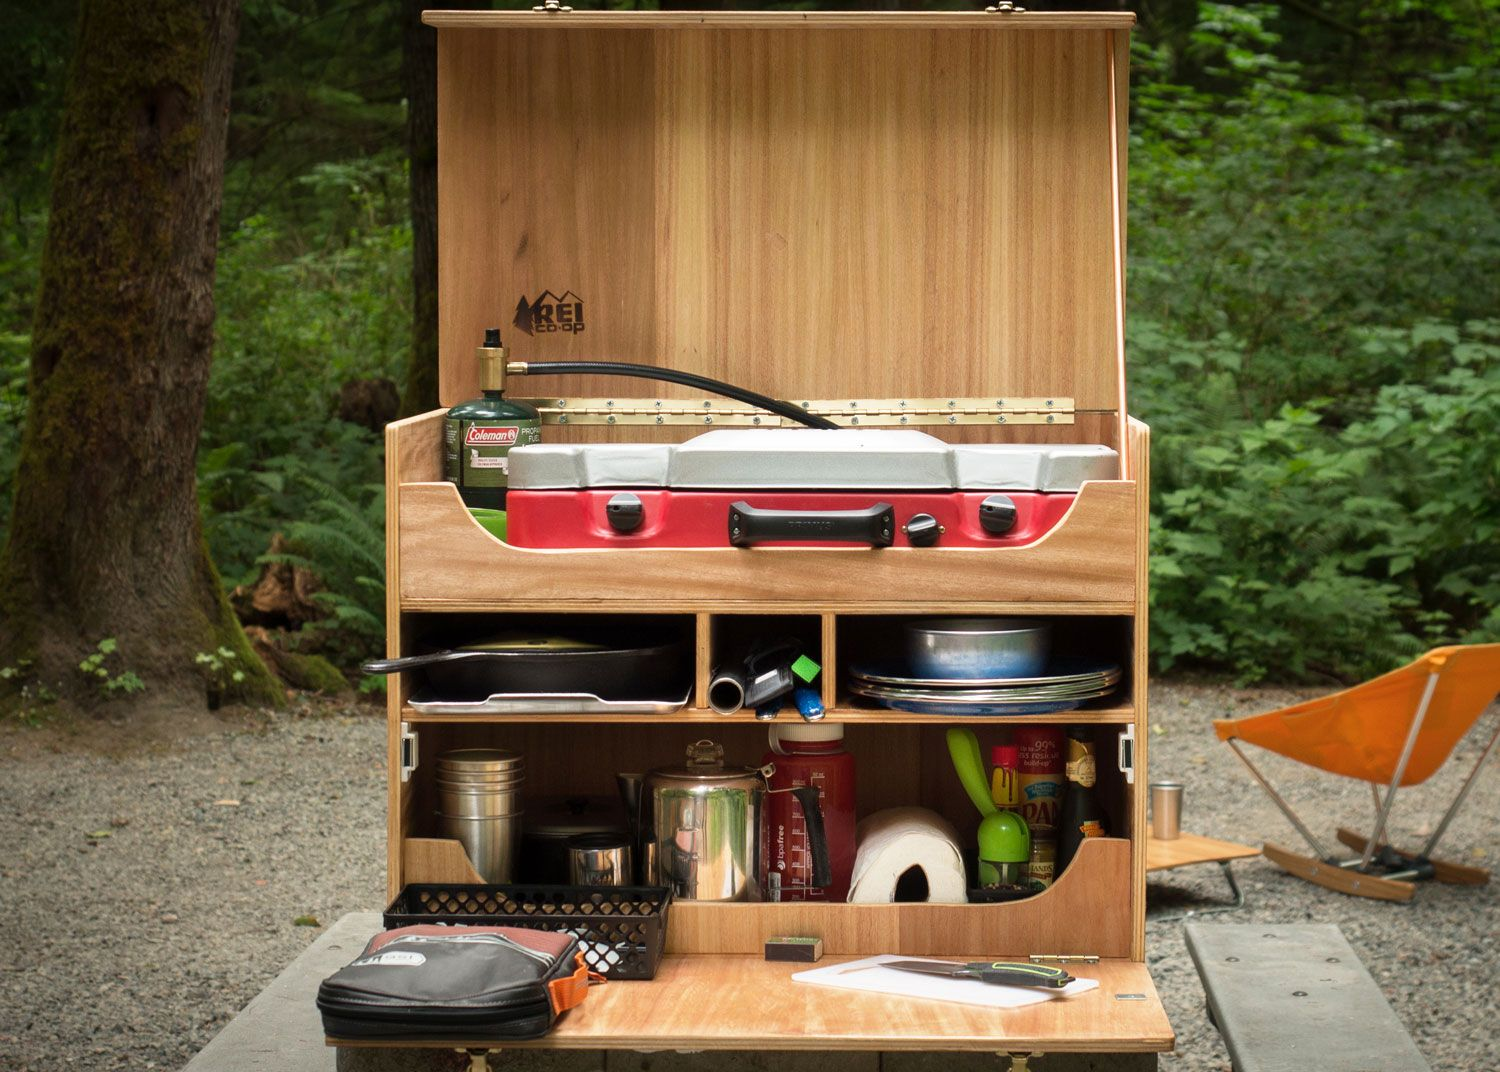 How To Build Your Own Camp Kitchen Chuck Box Camp Kitchen Chuck Box Chuck Box Outdoor Camping Kitchen